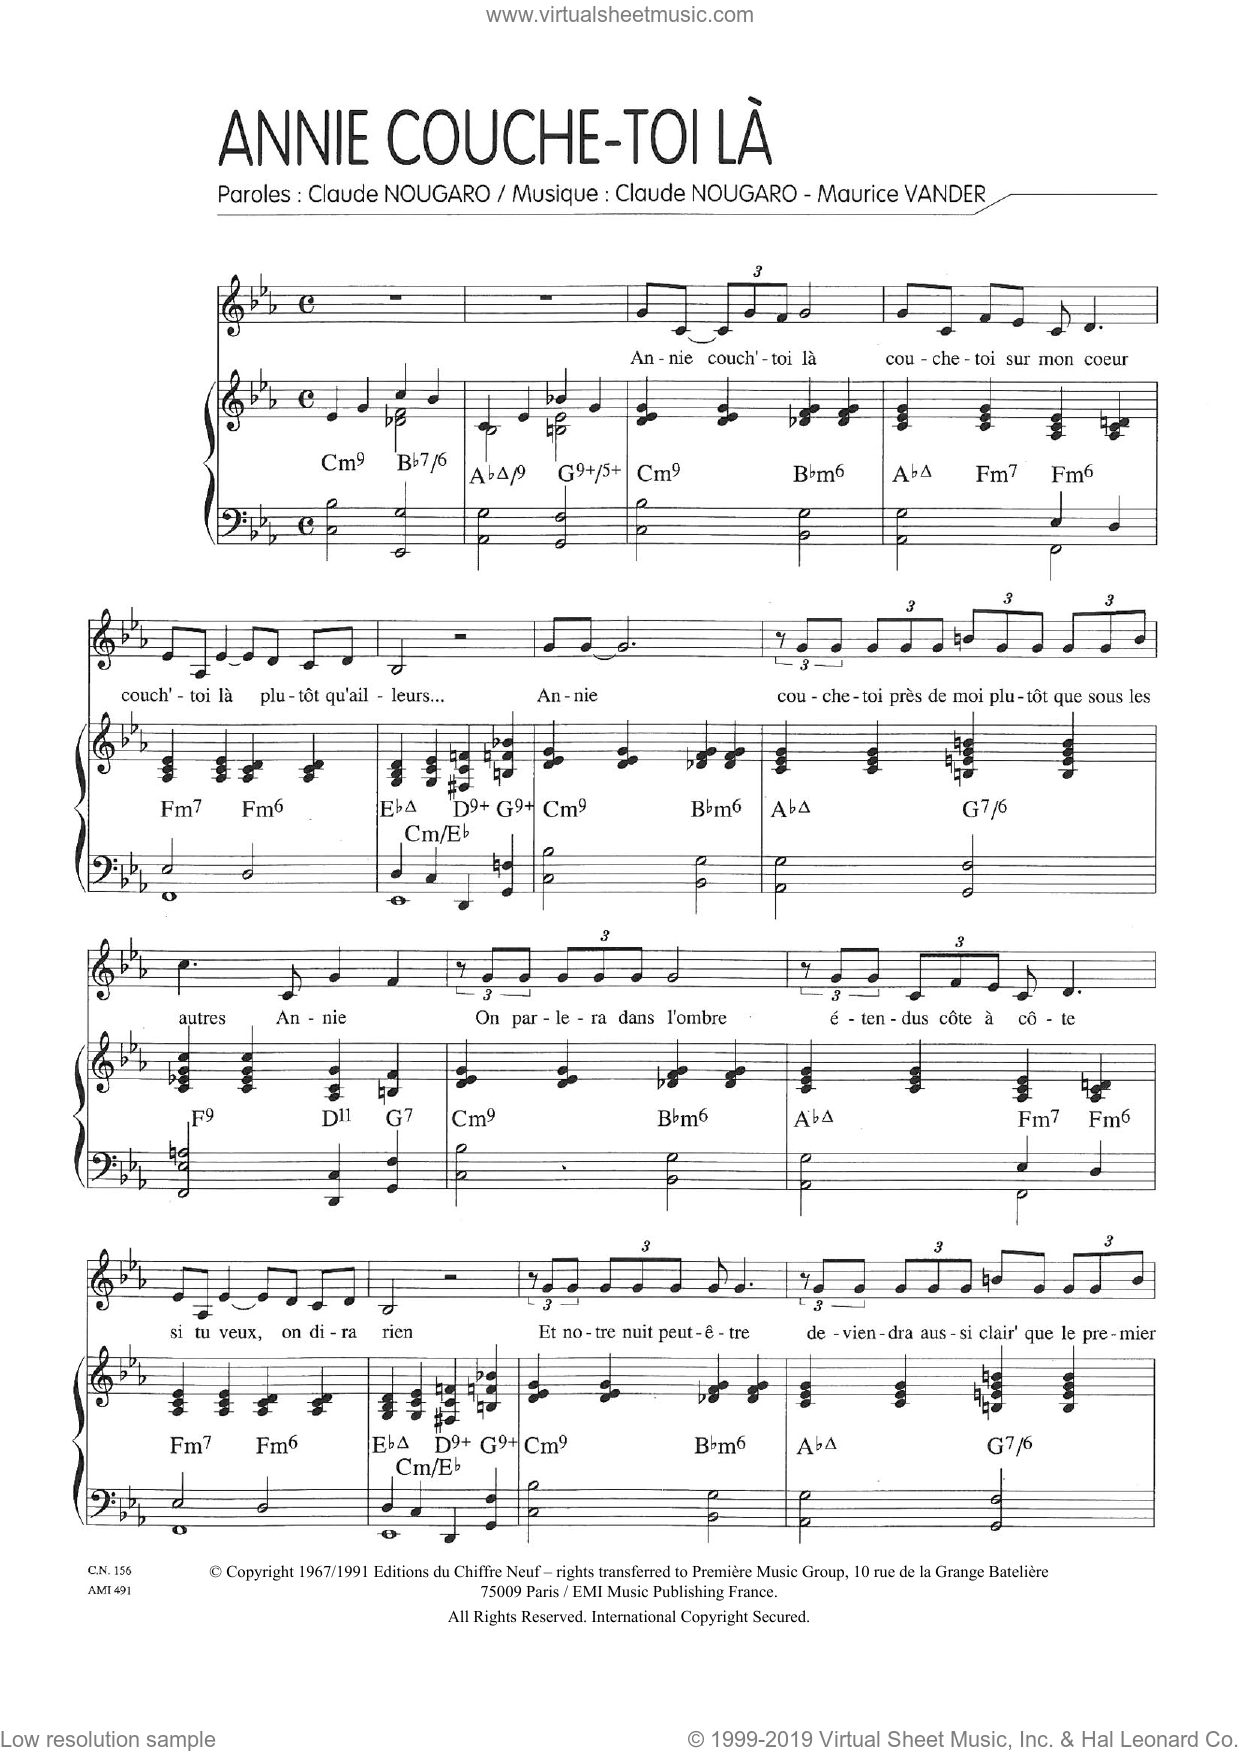 Annie Couche-Toi La sheet music for voice and piano by Claude Nougaro and Maurice Vanderschueren, intermediate skill level